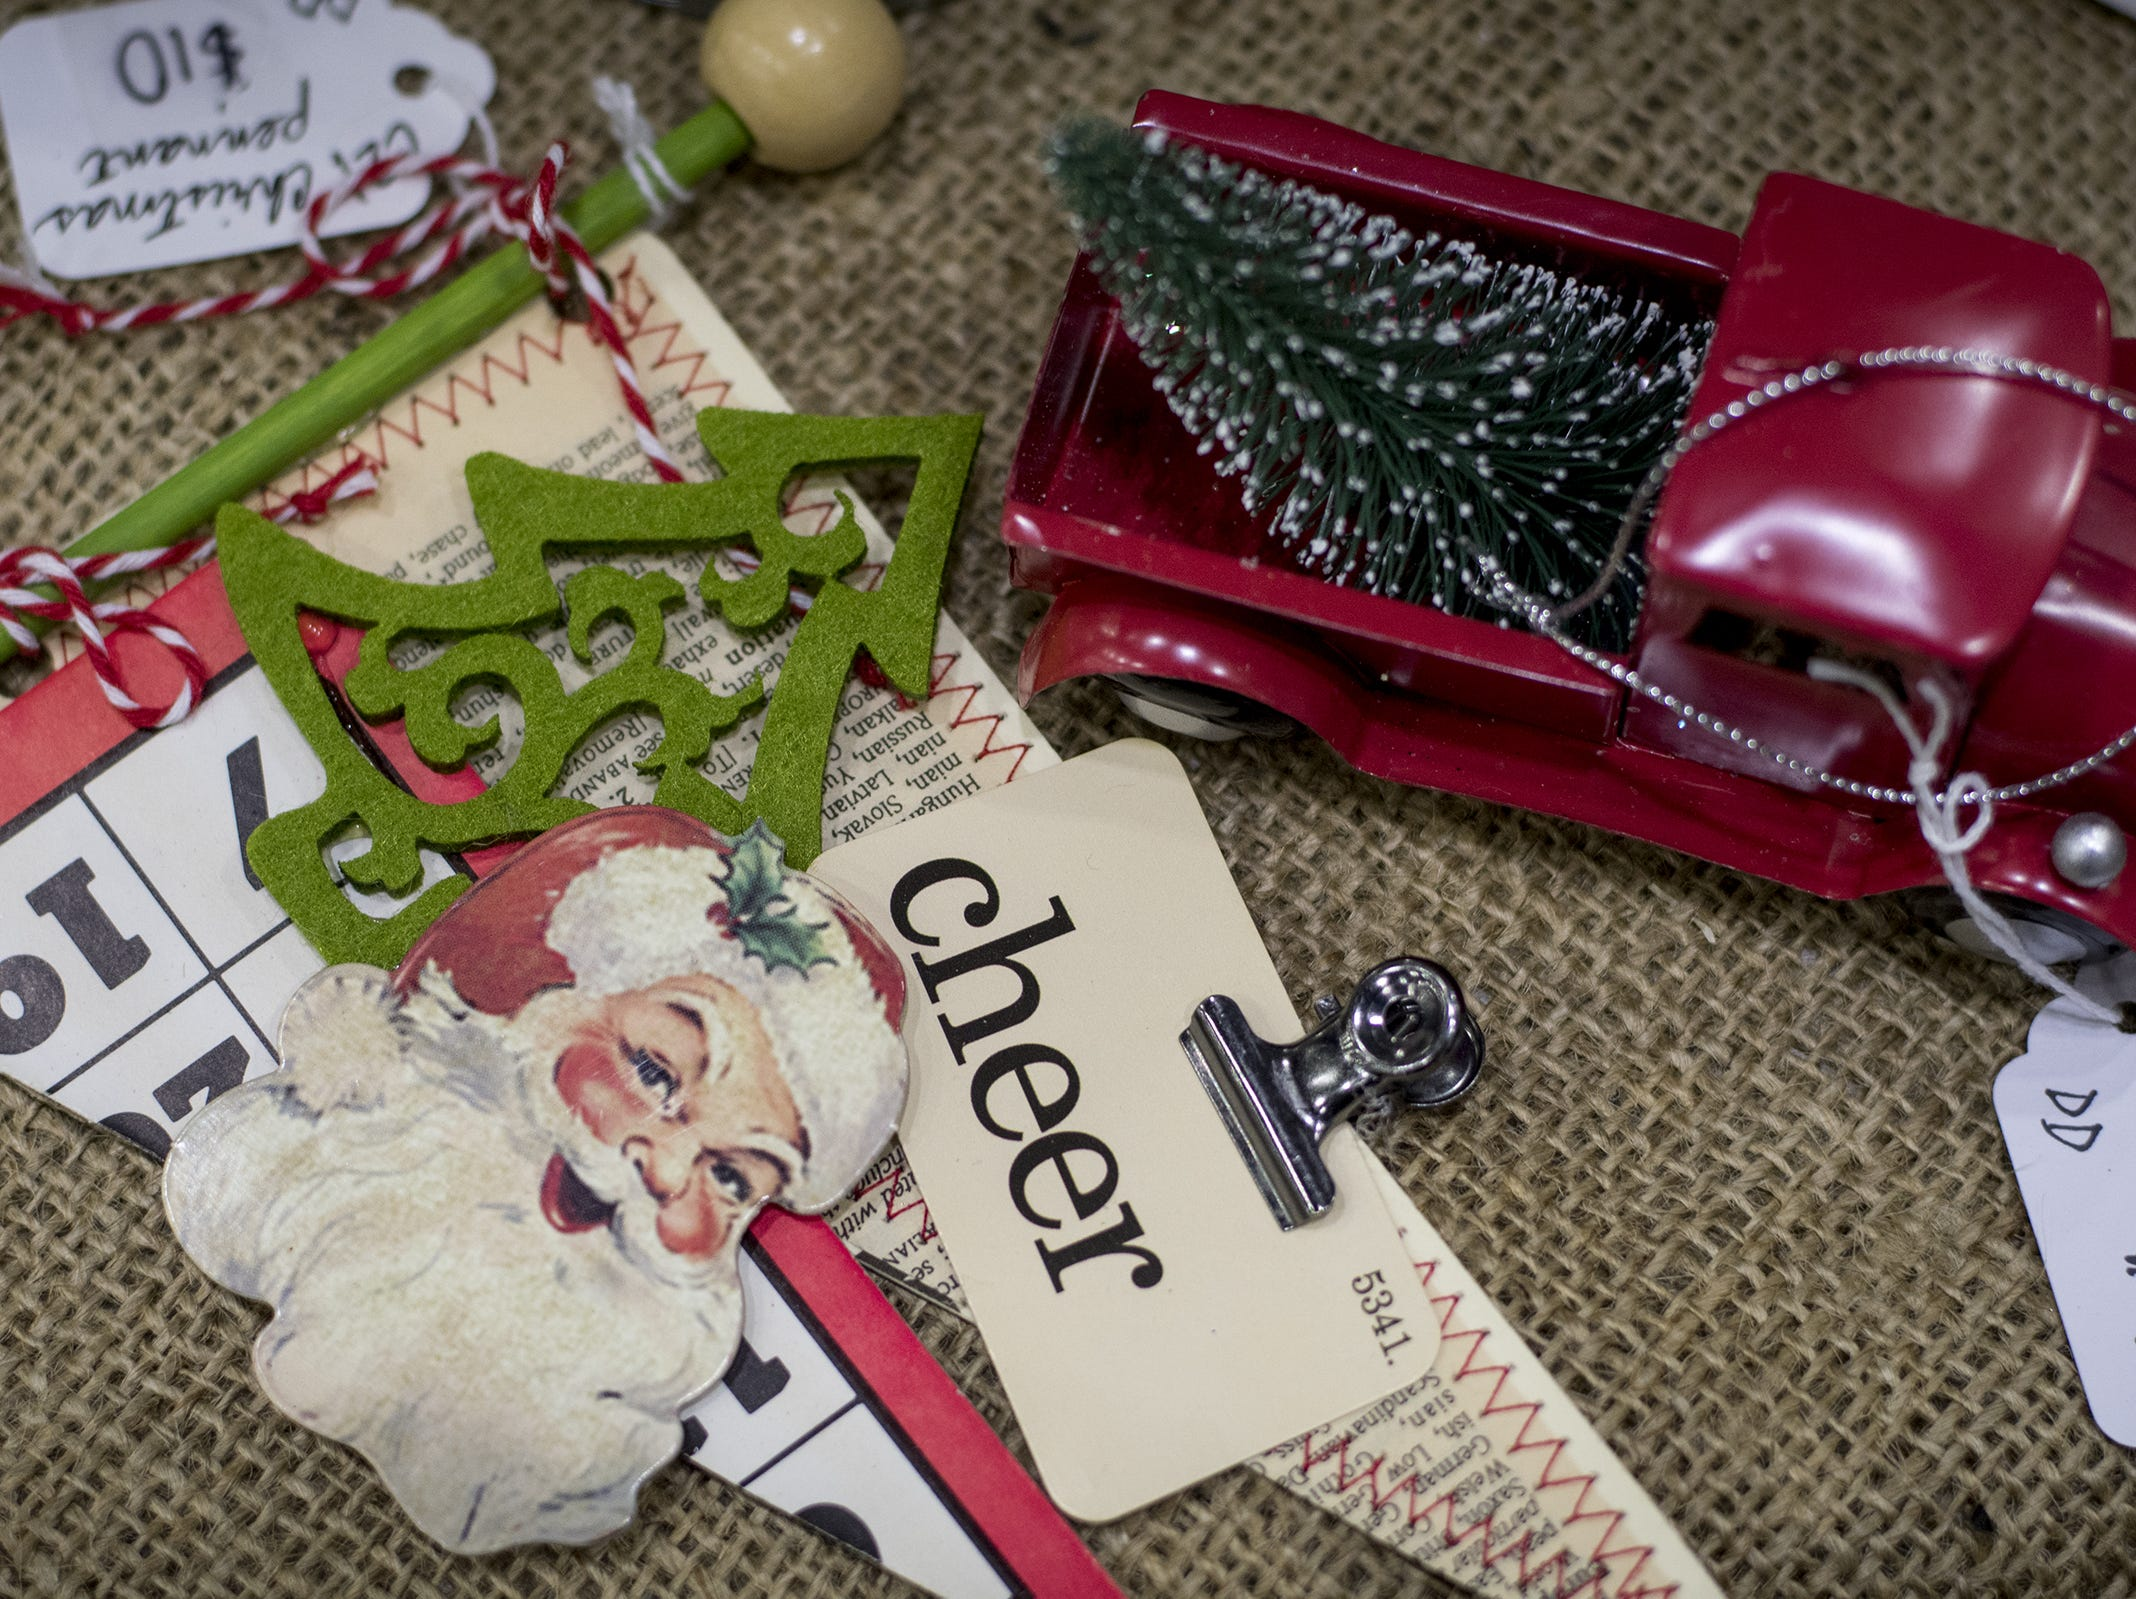 Once and Again Designs sell holiday knick-knacks and decorations during the Greater Cincinnati Holiday Market at the Duke Energy Center Friday, November 2, 2018 in Cincinnati, Ohio.